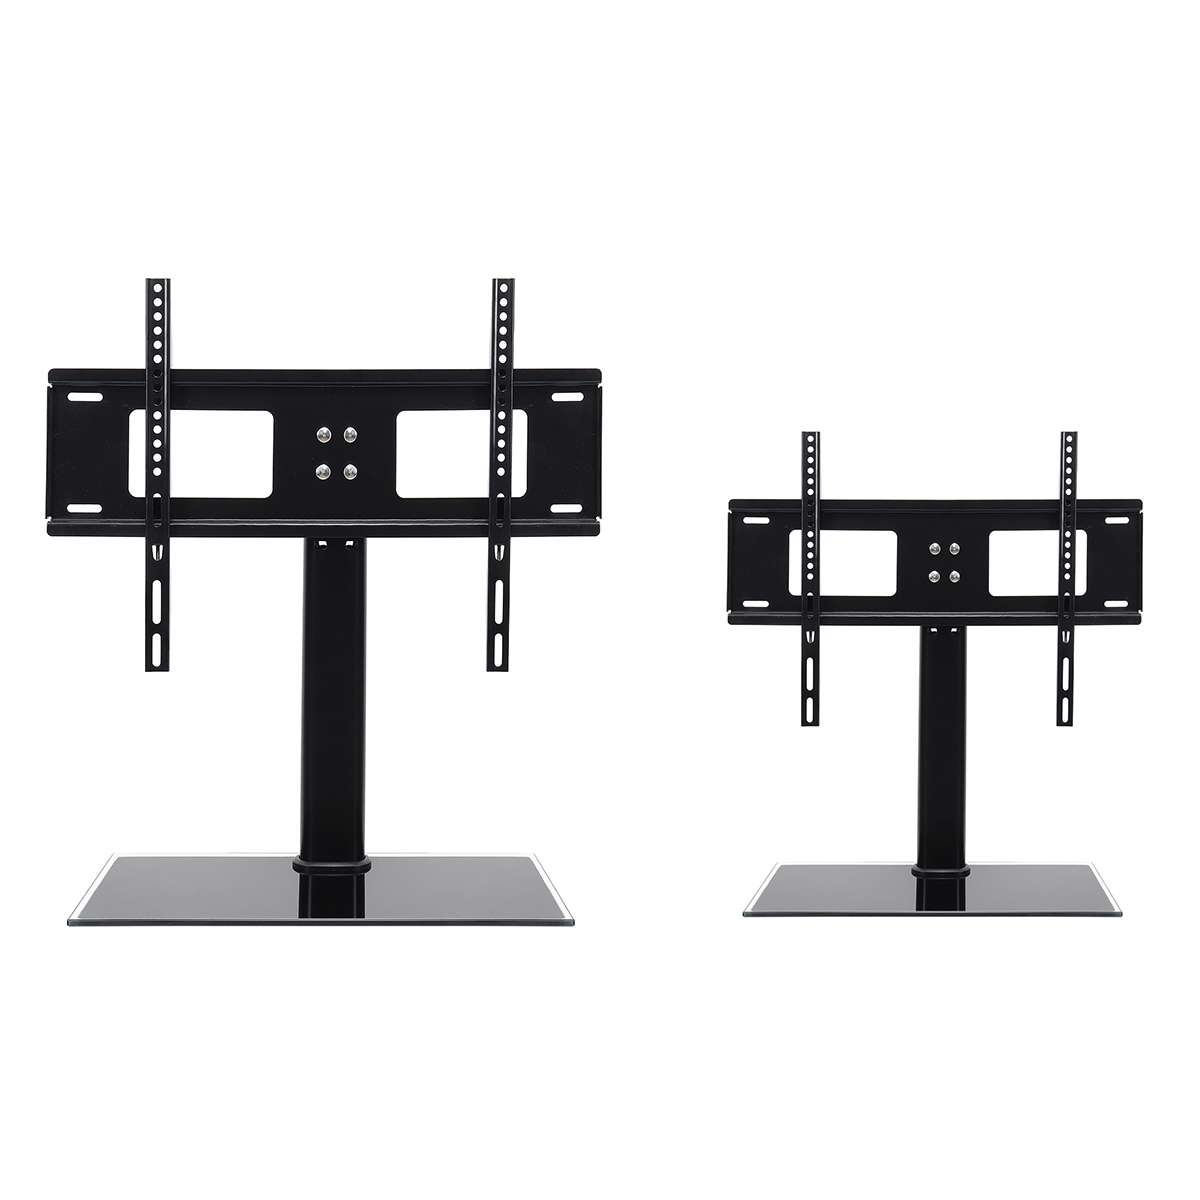 Black Universal Tabletop TV Stand Base Vesa Pedestal TV Mount Rack for Flat LCD LED 26'' 55'' Television Accessories Parts